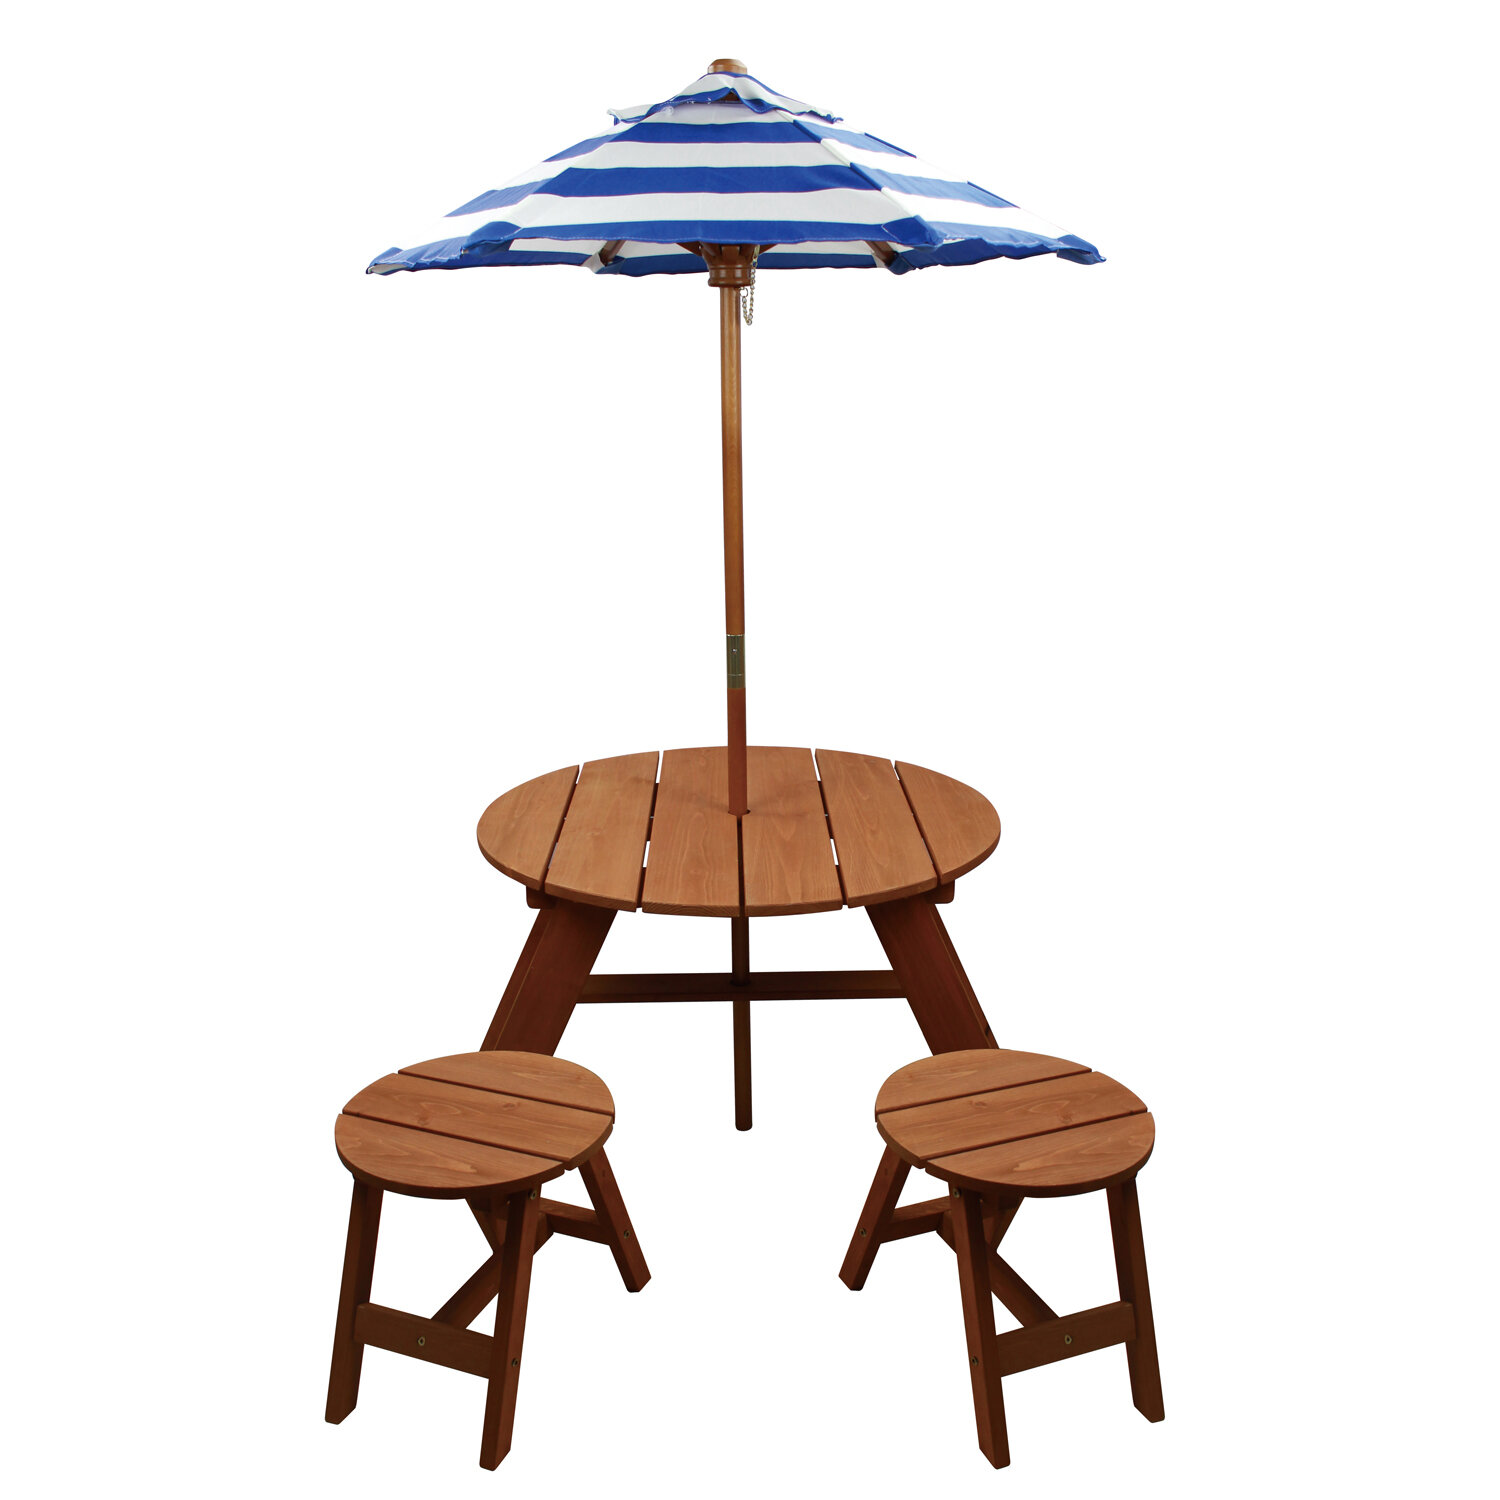 Homeware Kids 4 Piece Wood Round Table And Chair Set With Umbrella   Wayfair